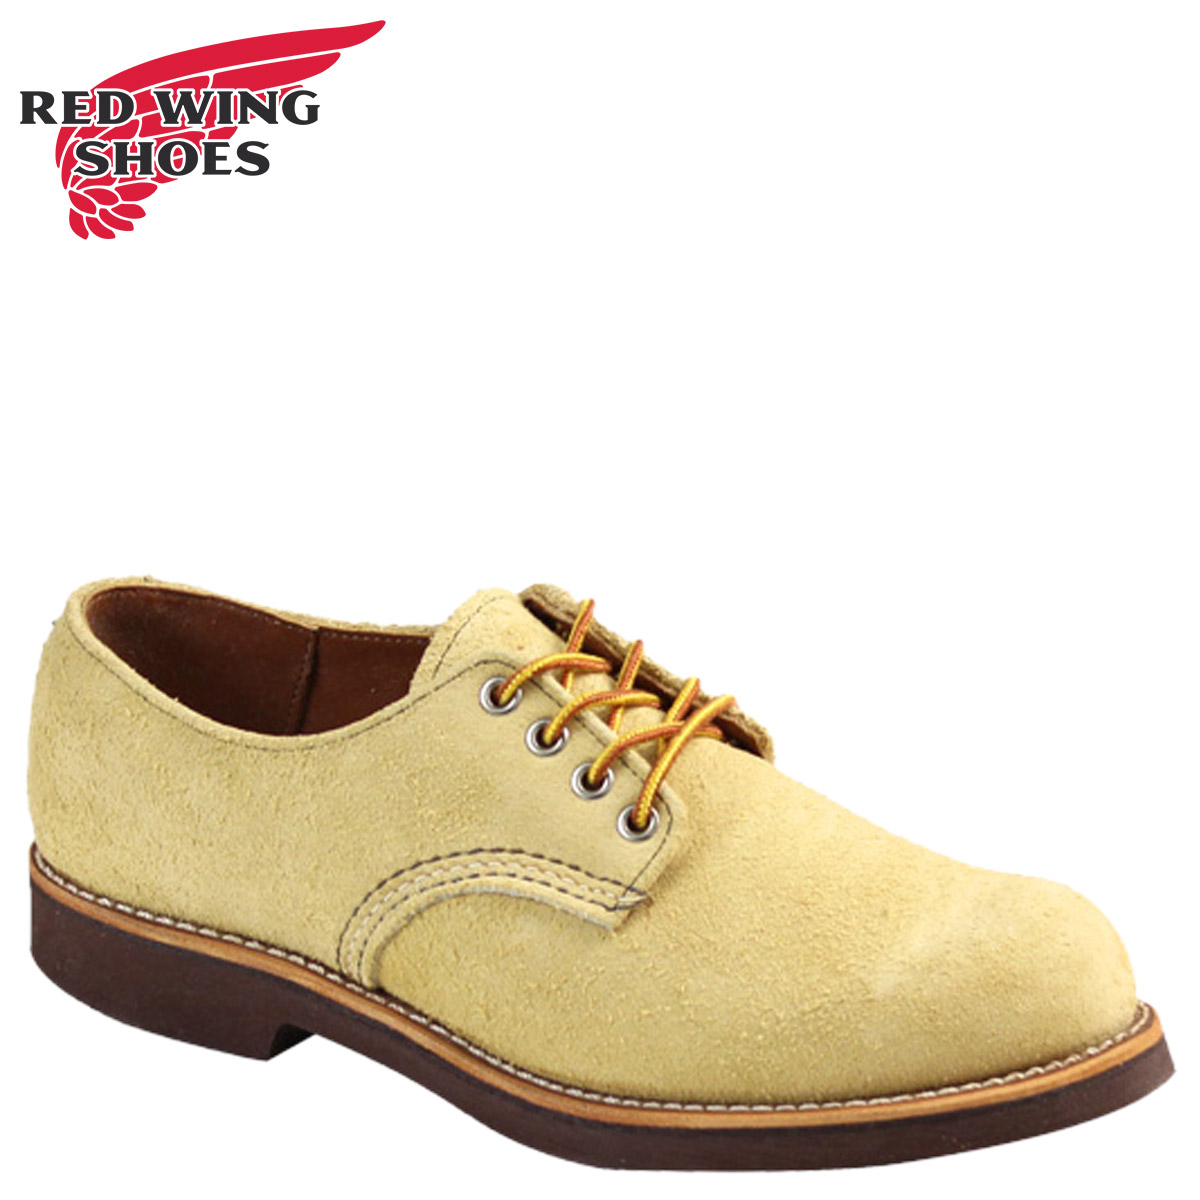 Redwing RED WING Oxford 8057 [Hawthorne] Oxford D wise roughout men's shoes Shoes Made in USA Red Wing [12 / 28 Add restock] [regular]